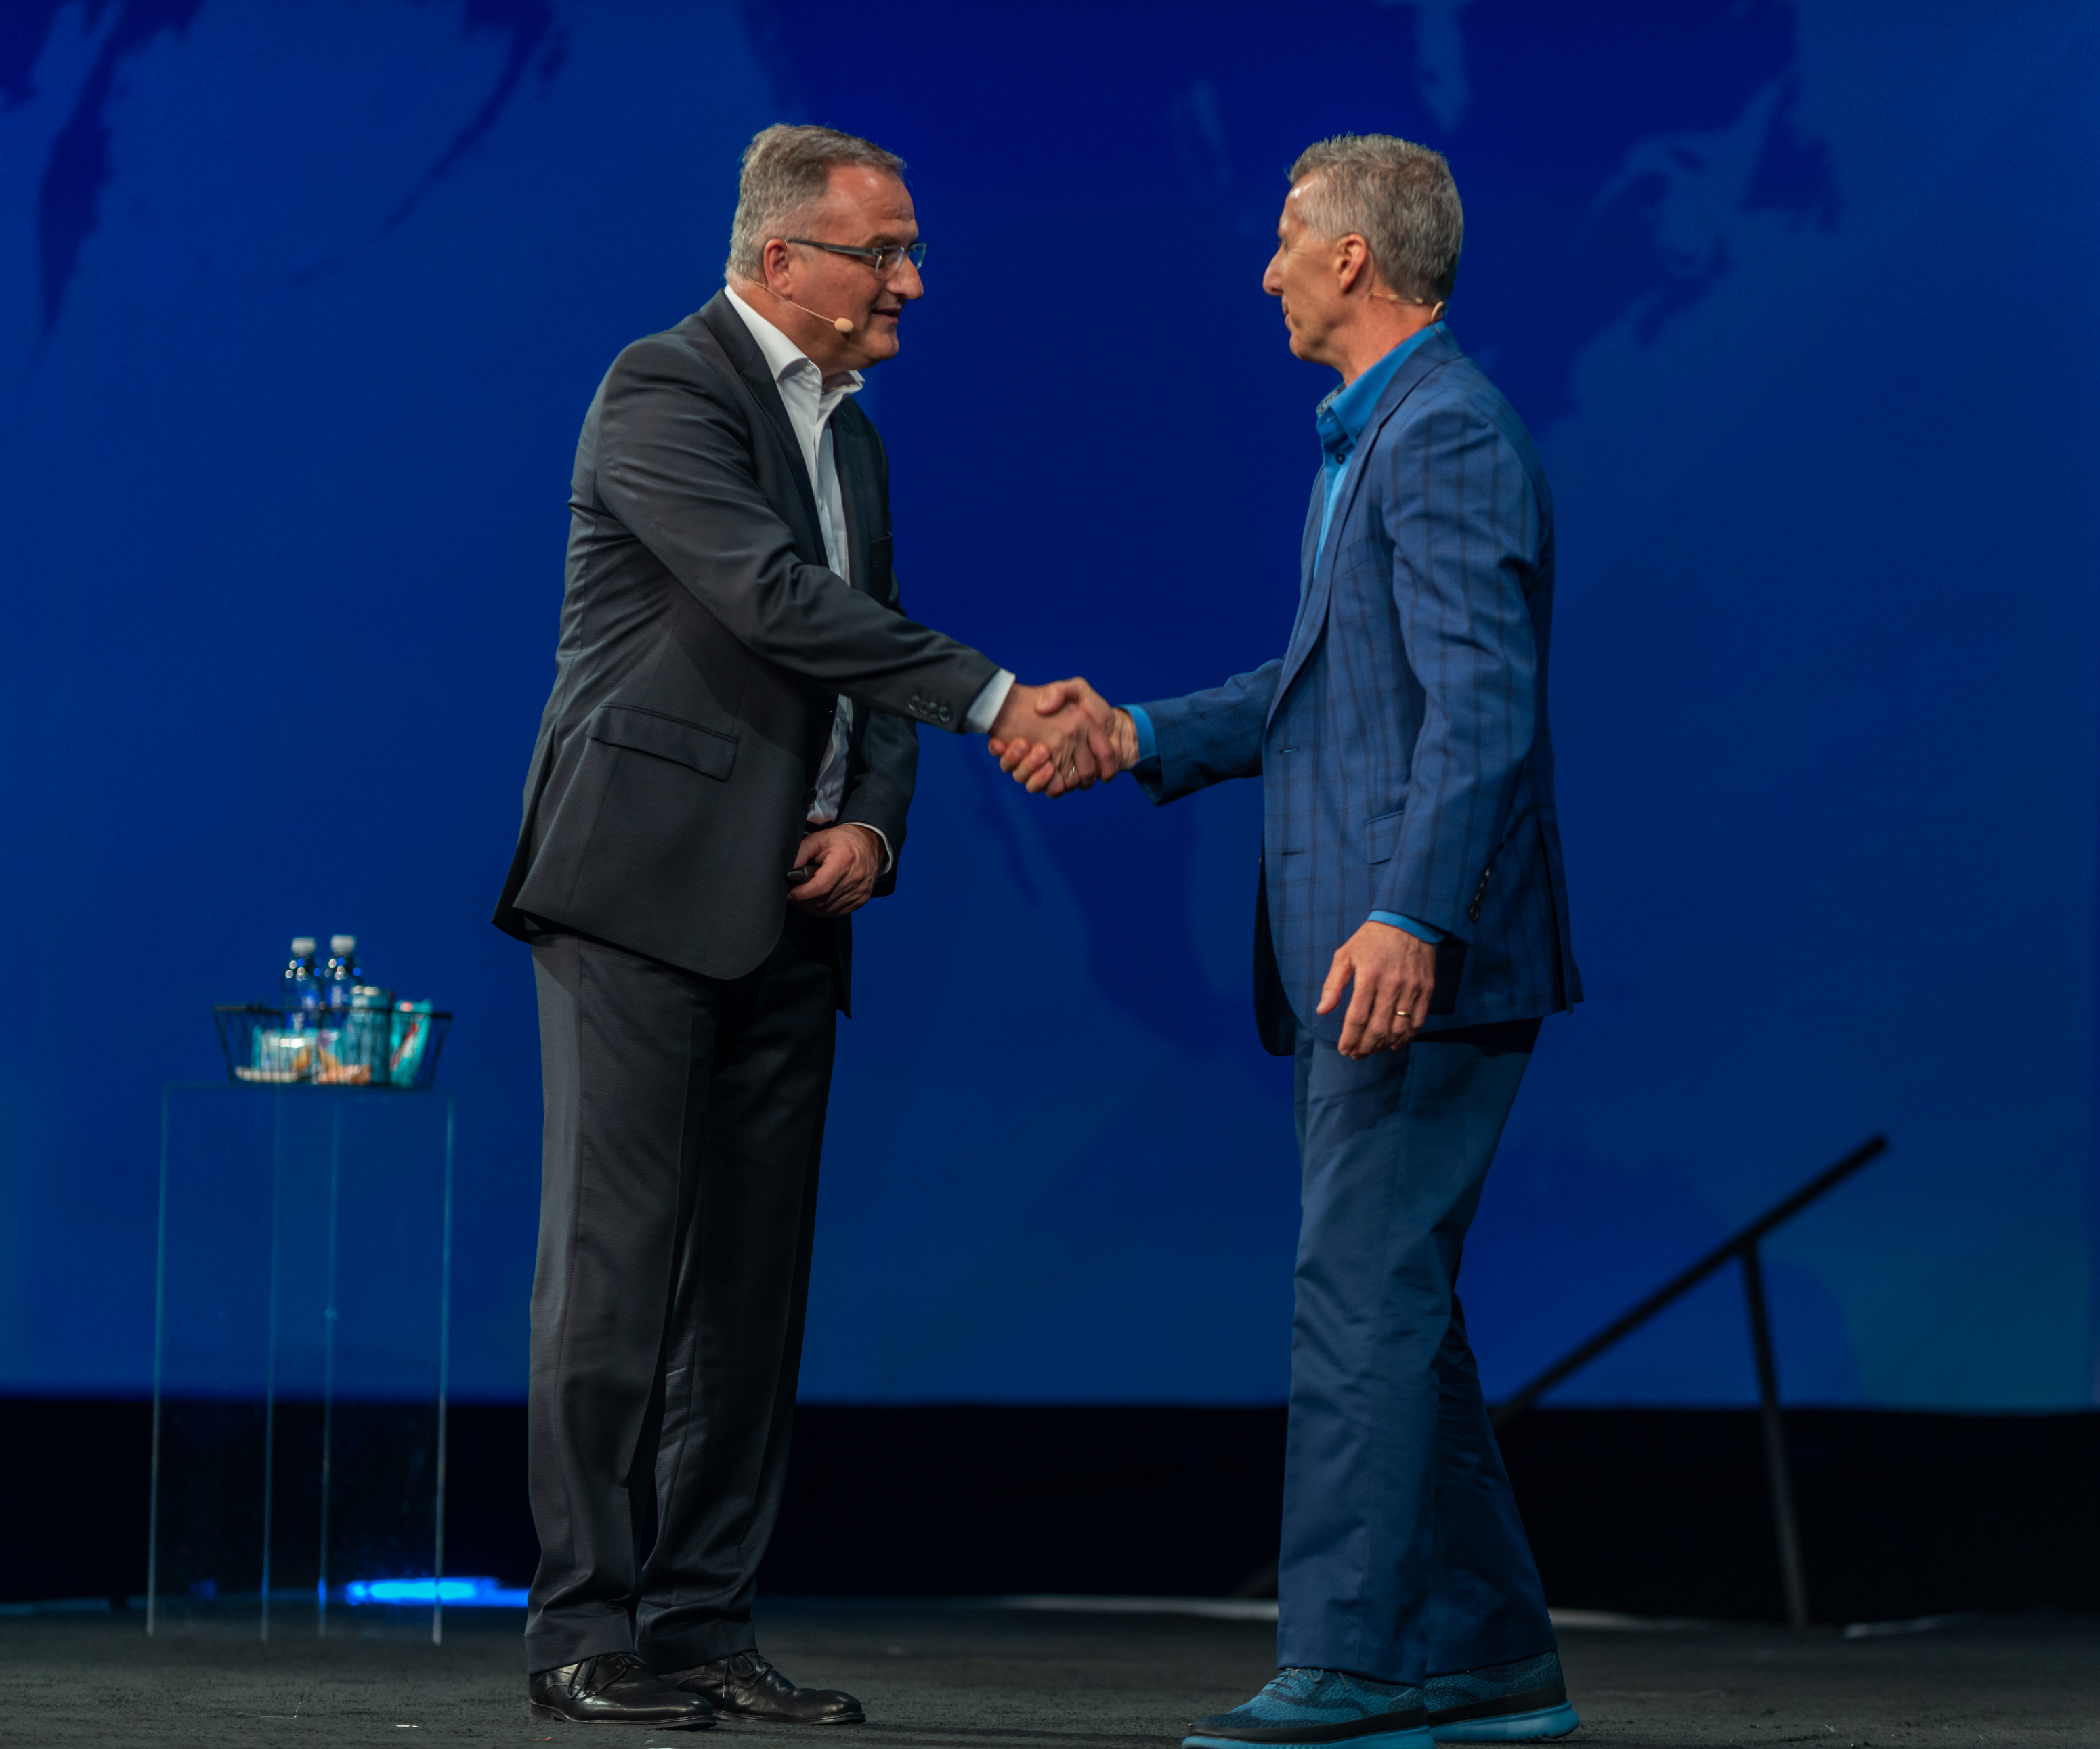 Speaking at HxGN Live, Hexagon's annual conference in Las Vegas, Norbert Hanke, president of Hexagon Manufacturing Intelligence, greets guest speaker Doug Woods, president of AMT-The Association for Manufacturing Technology. (Photo courtesy of Hexagon).